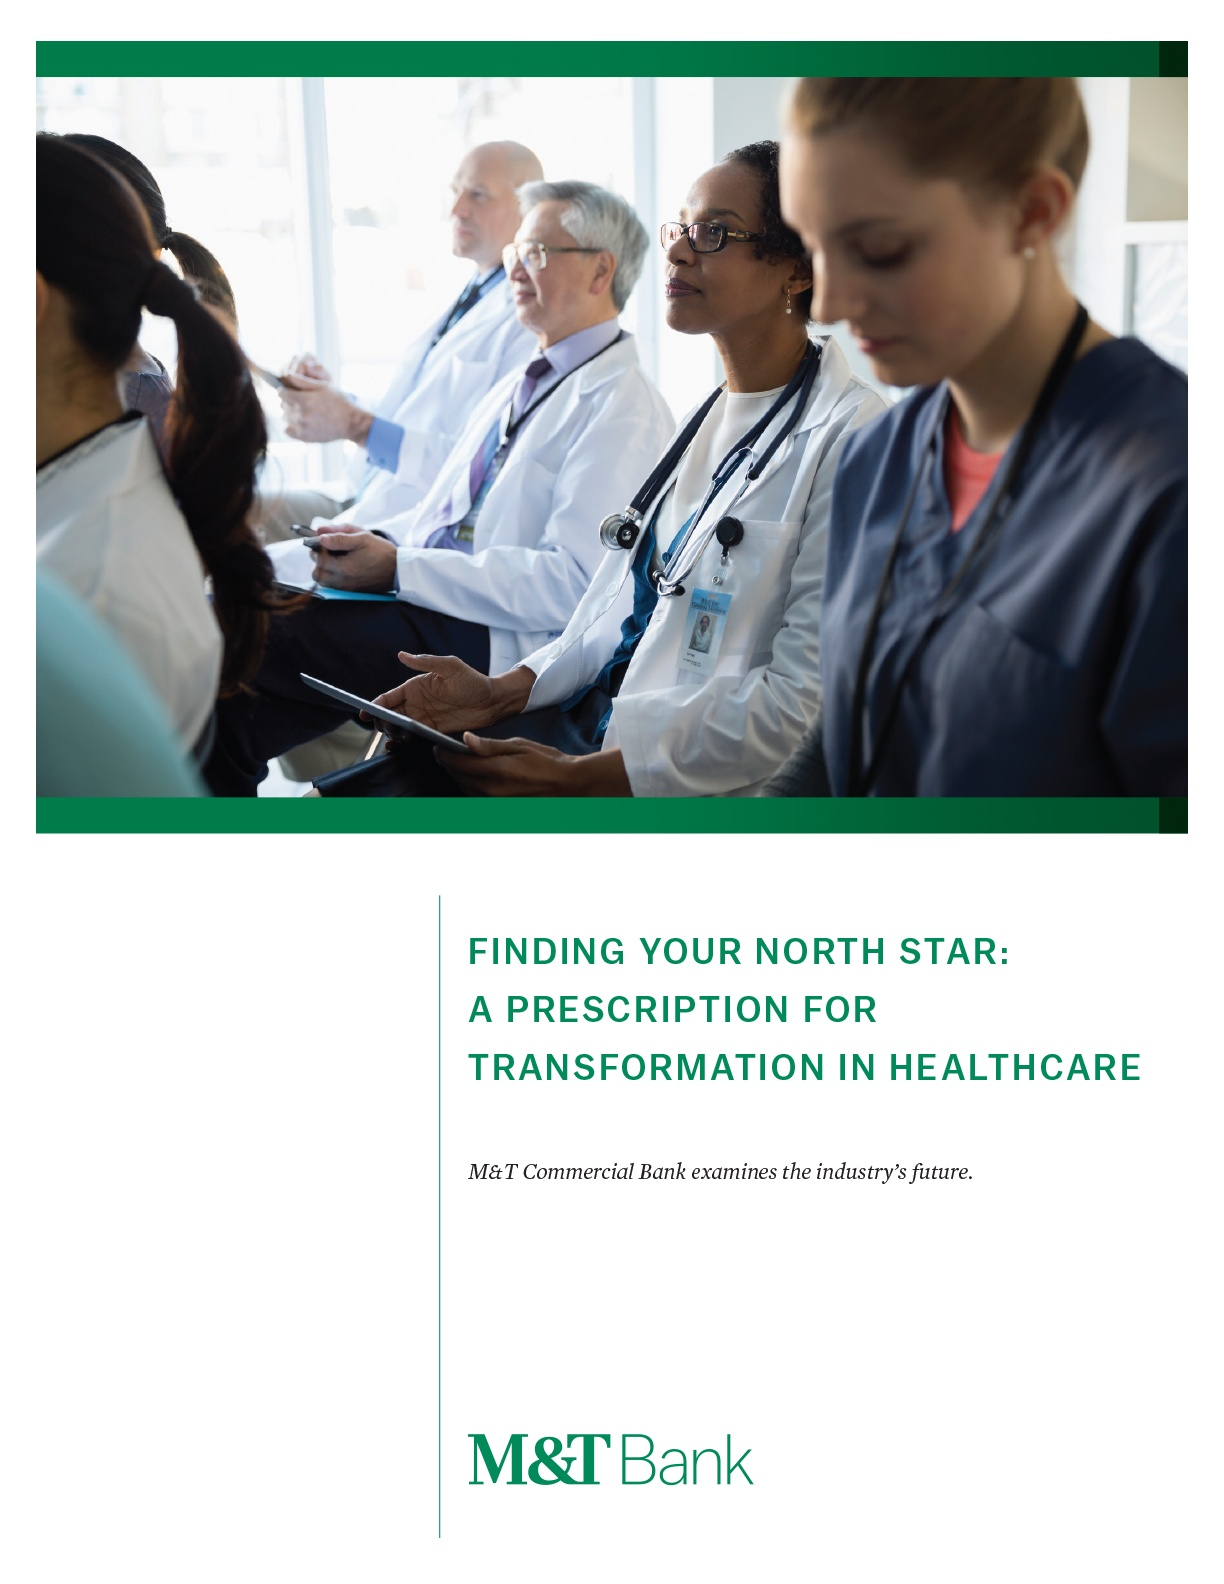 Finding Your North Star: A Prescription For Transformation in Healthcare